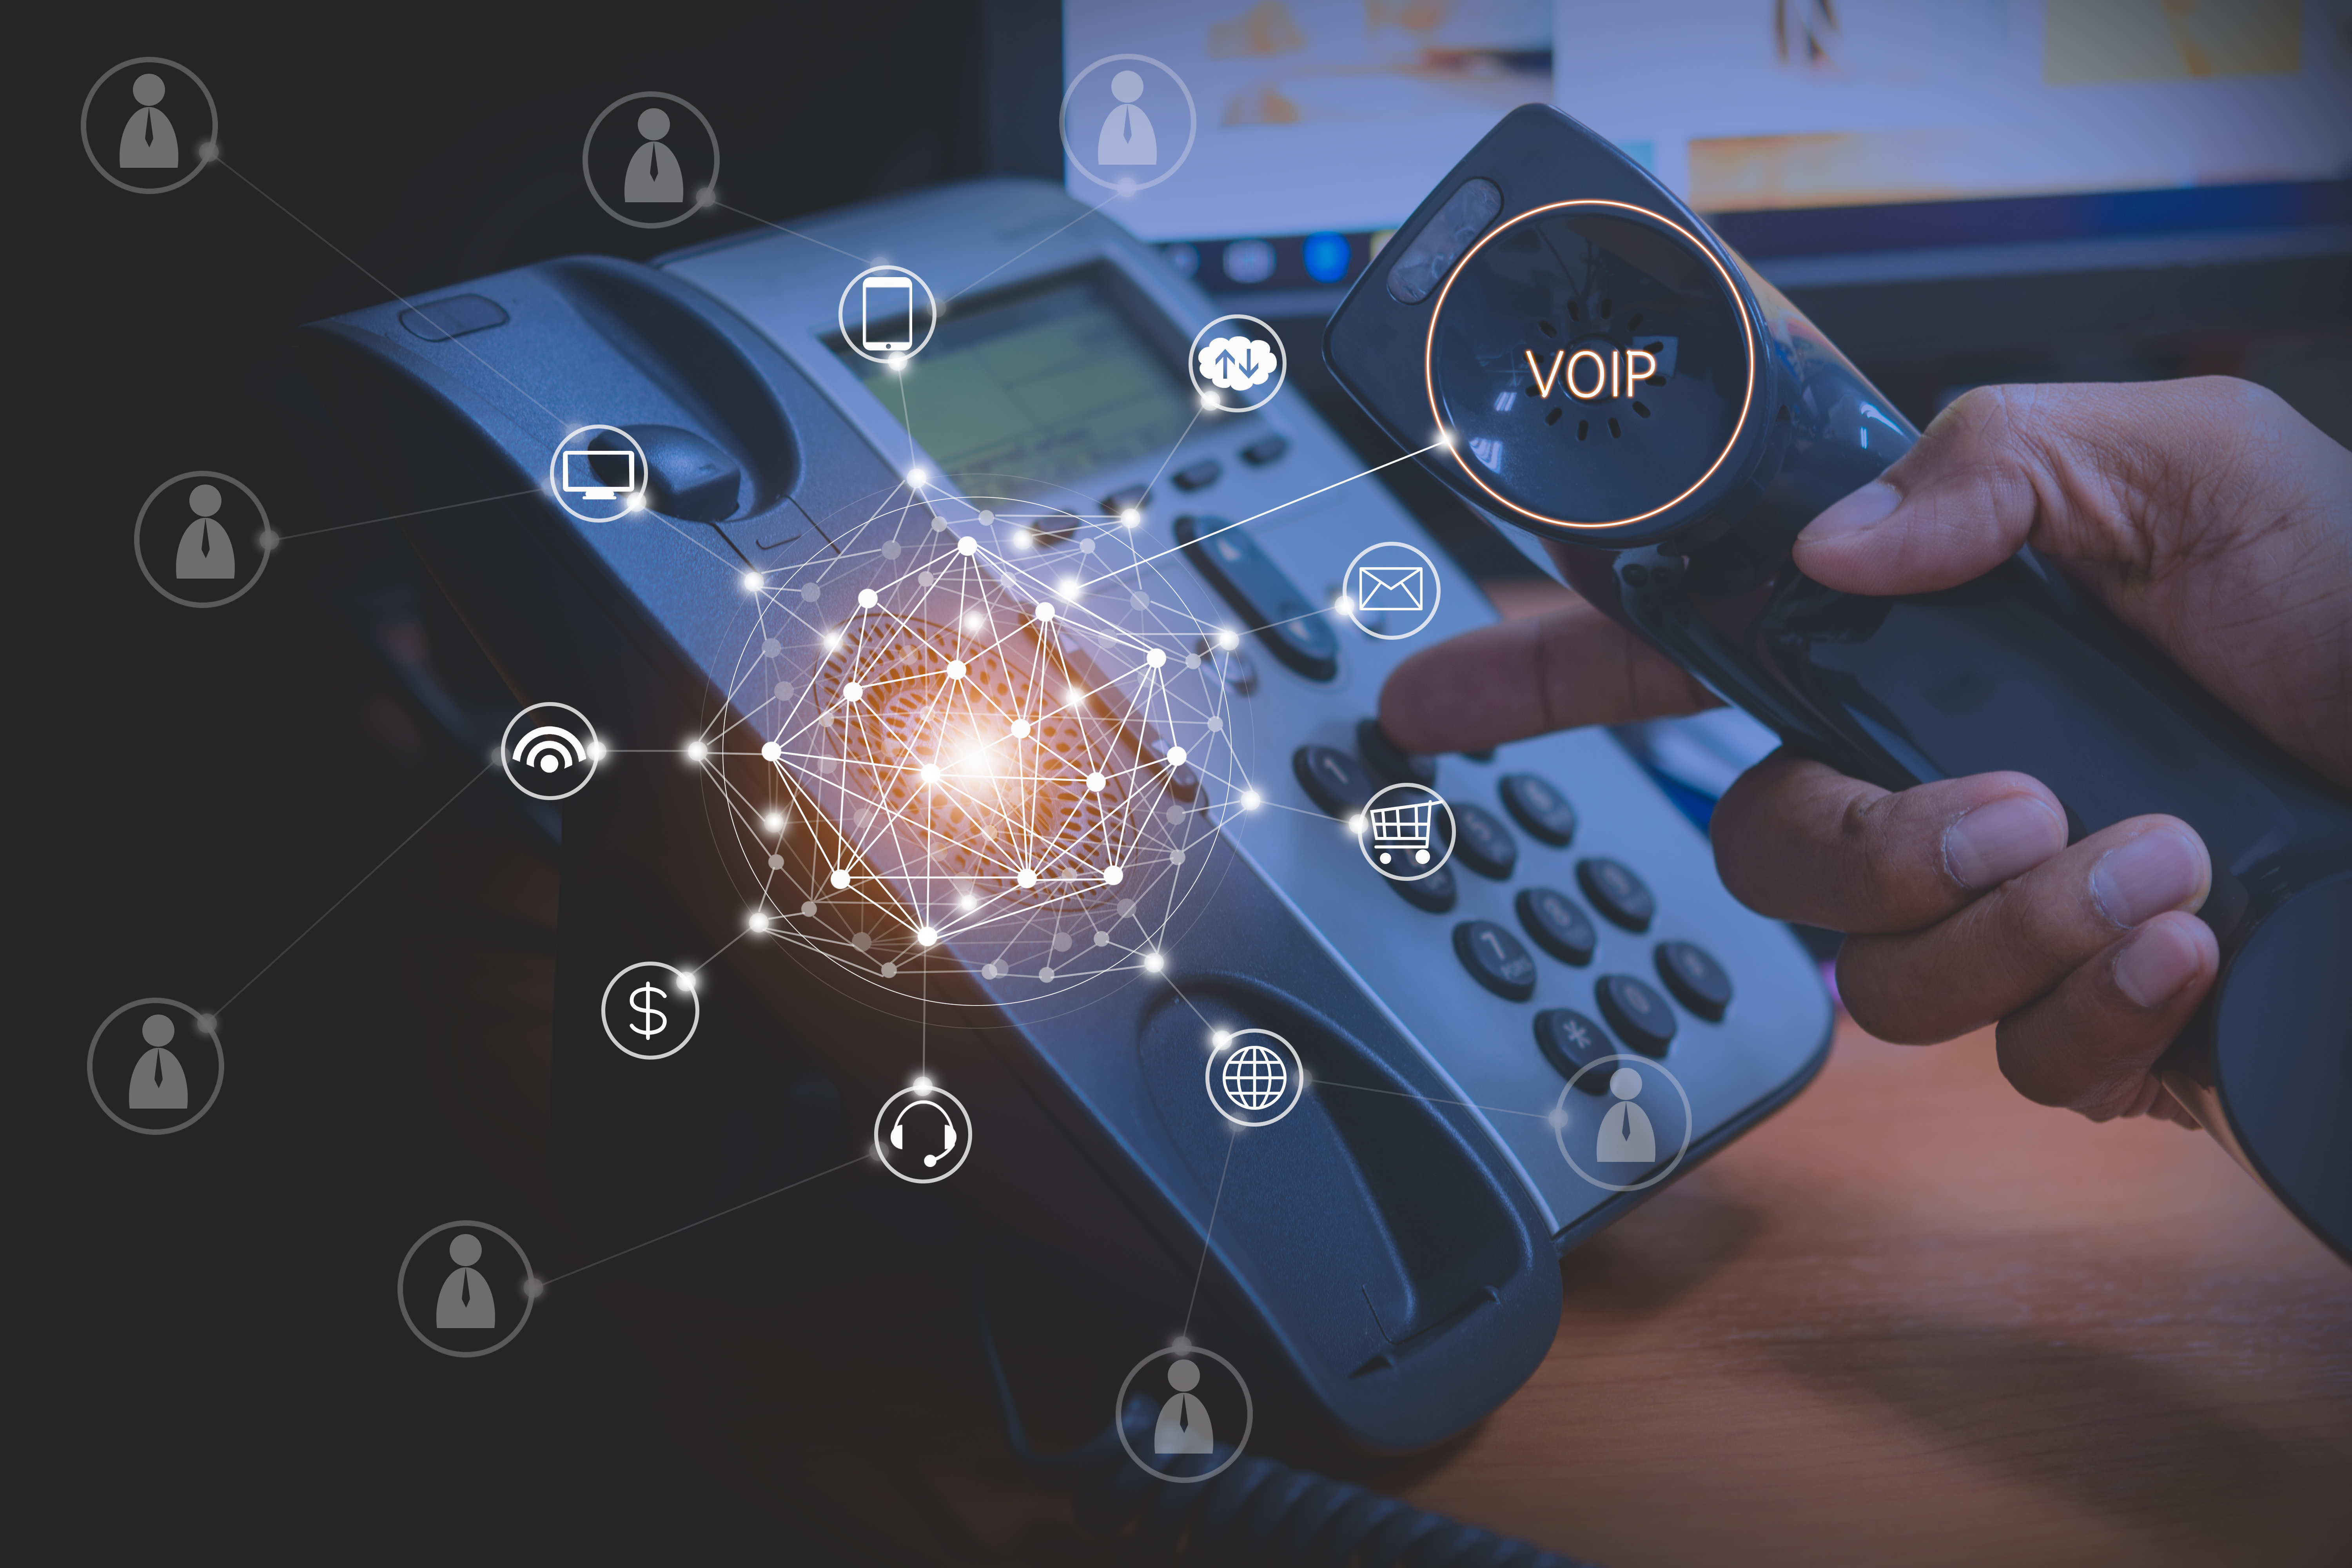 Visioneering: A Leader in the Telecommunications Industry